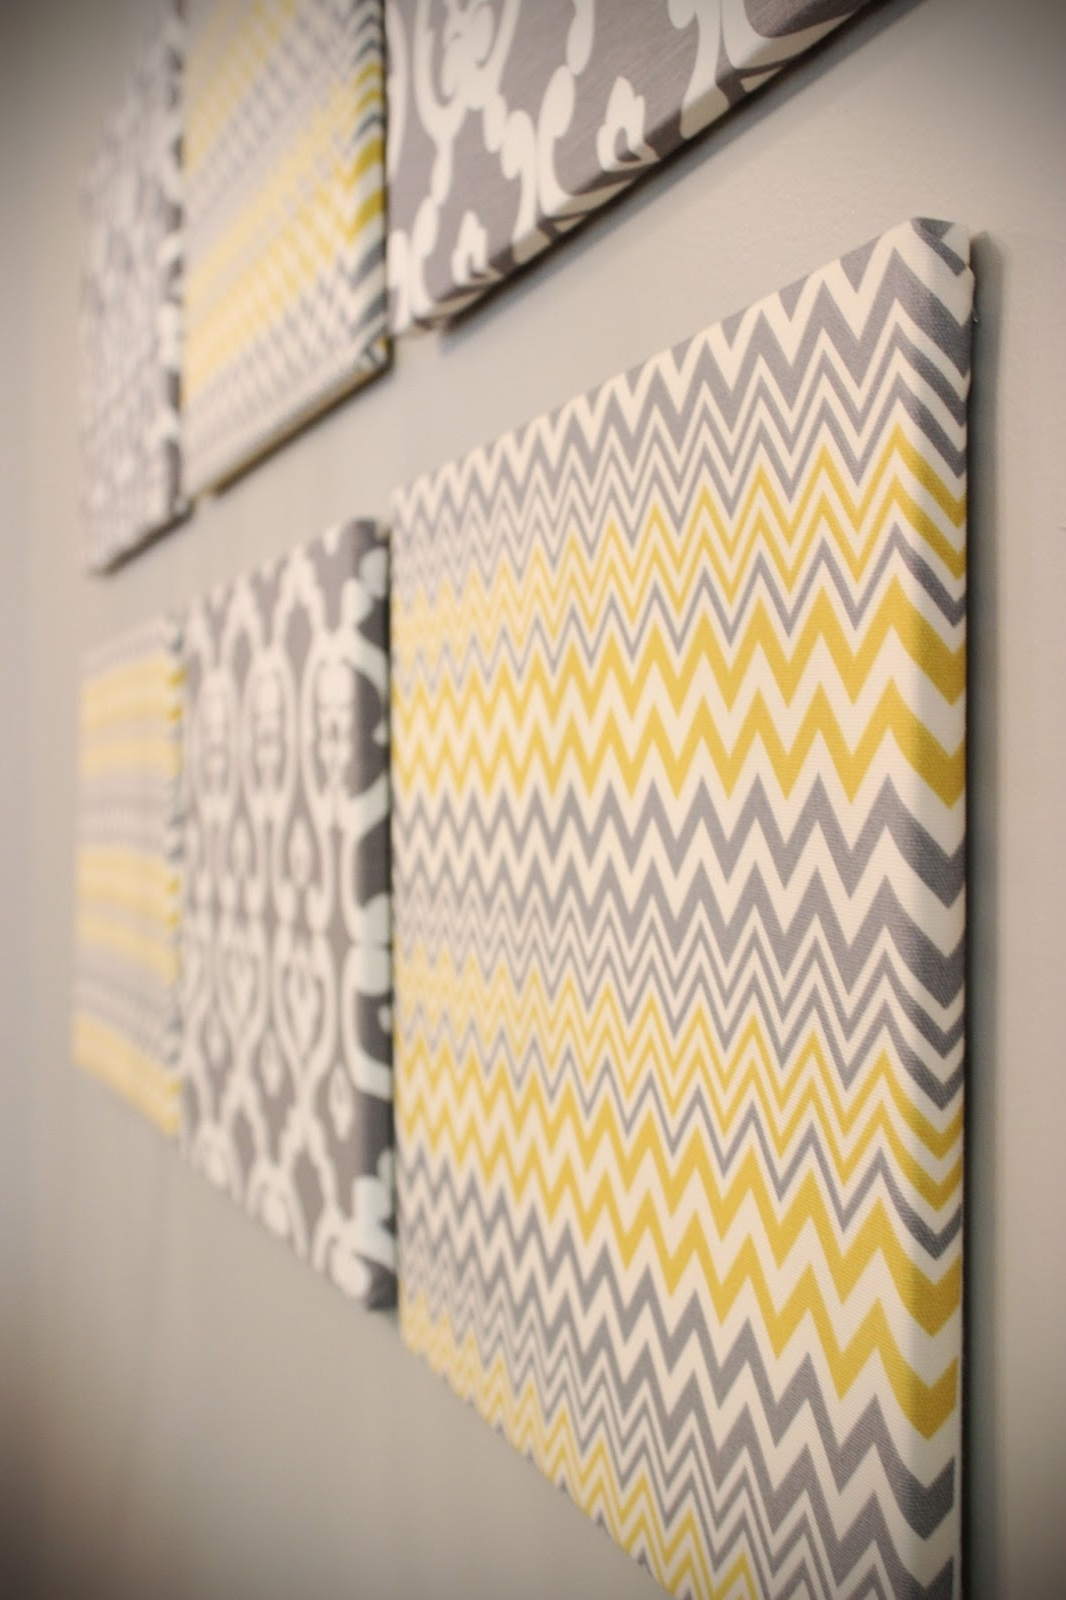 Cheap Fabric Wall Art With Regard To Most Current Why Have I Never Thought Of This, Buy Blank Canvases And Buy Cute (Gallery 1 of 15)